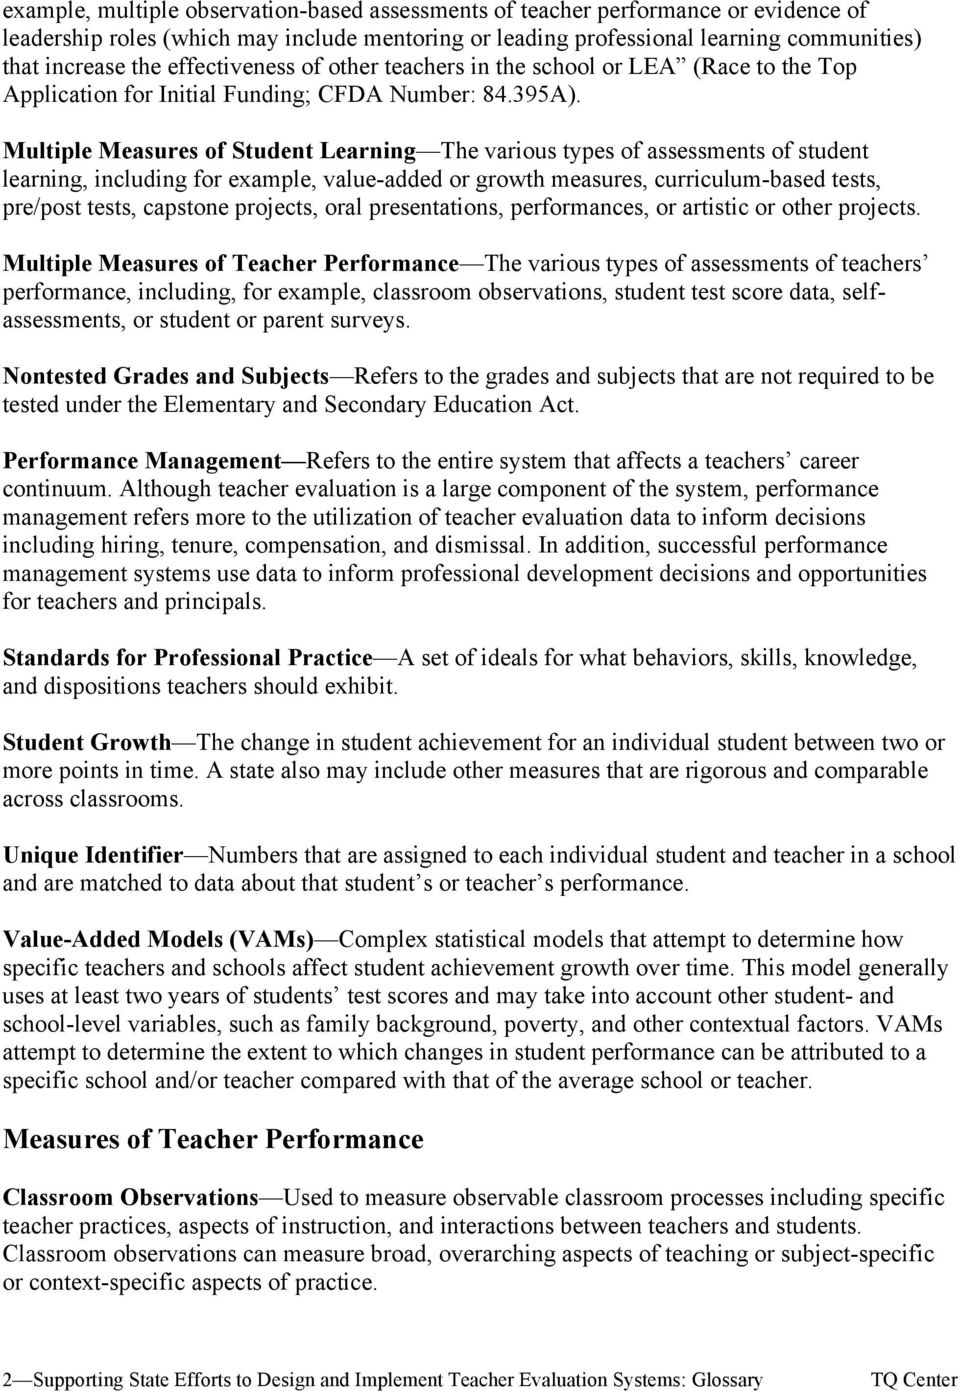 Multiple Measures of Student Learning The various types of assessments of student learning, including for example, value-added or growth measures, curriculum-based tests, pre/post tests, capstone